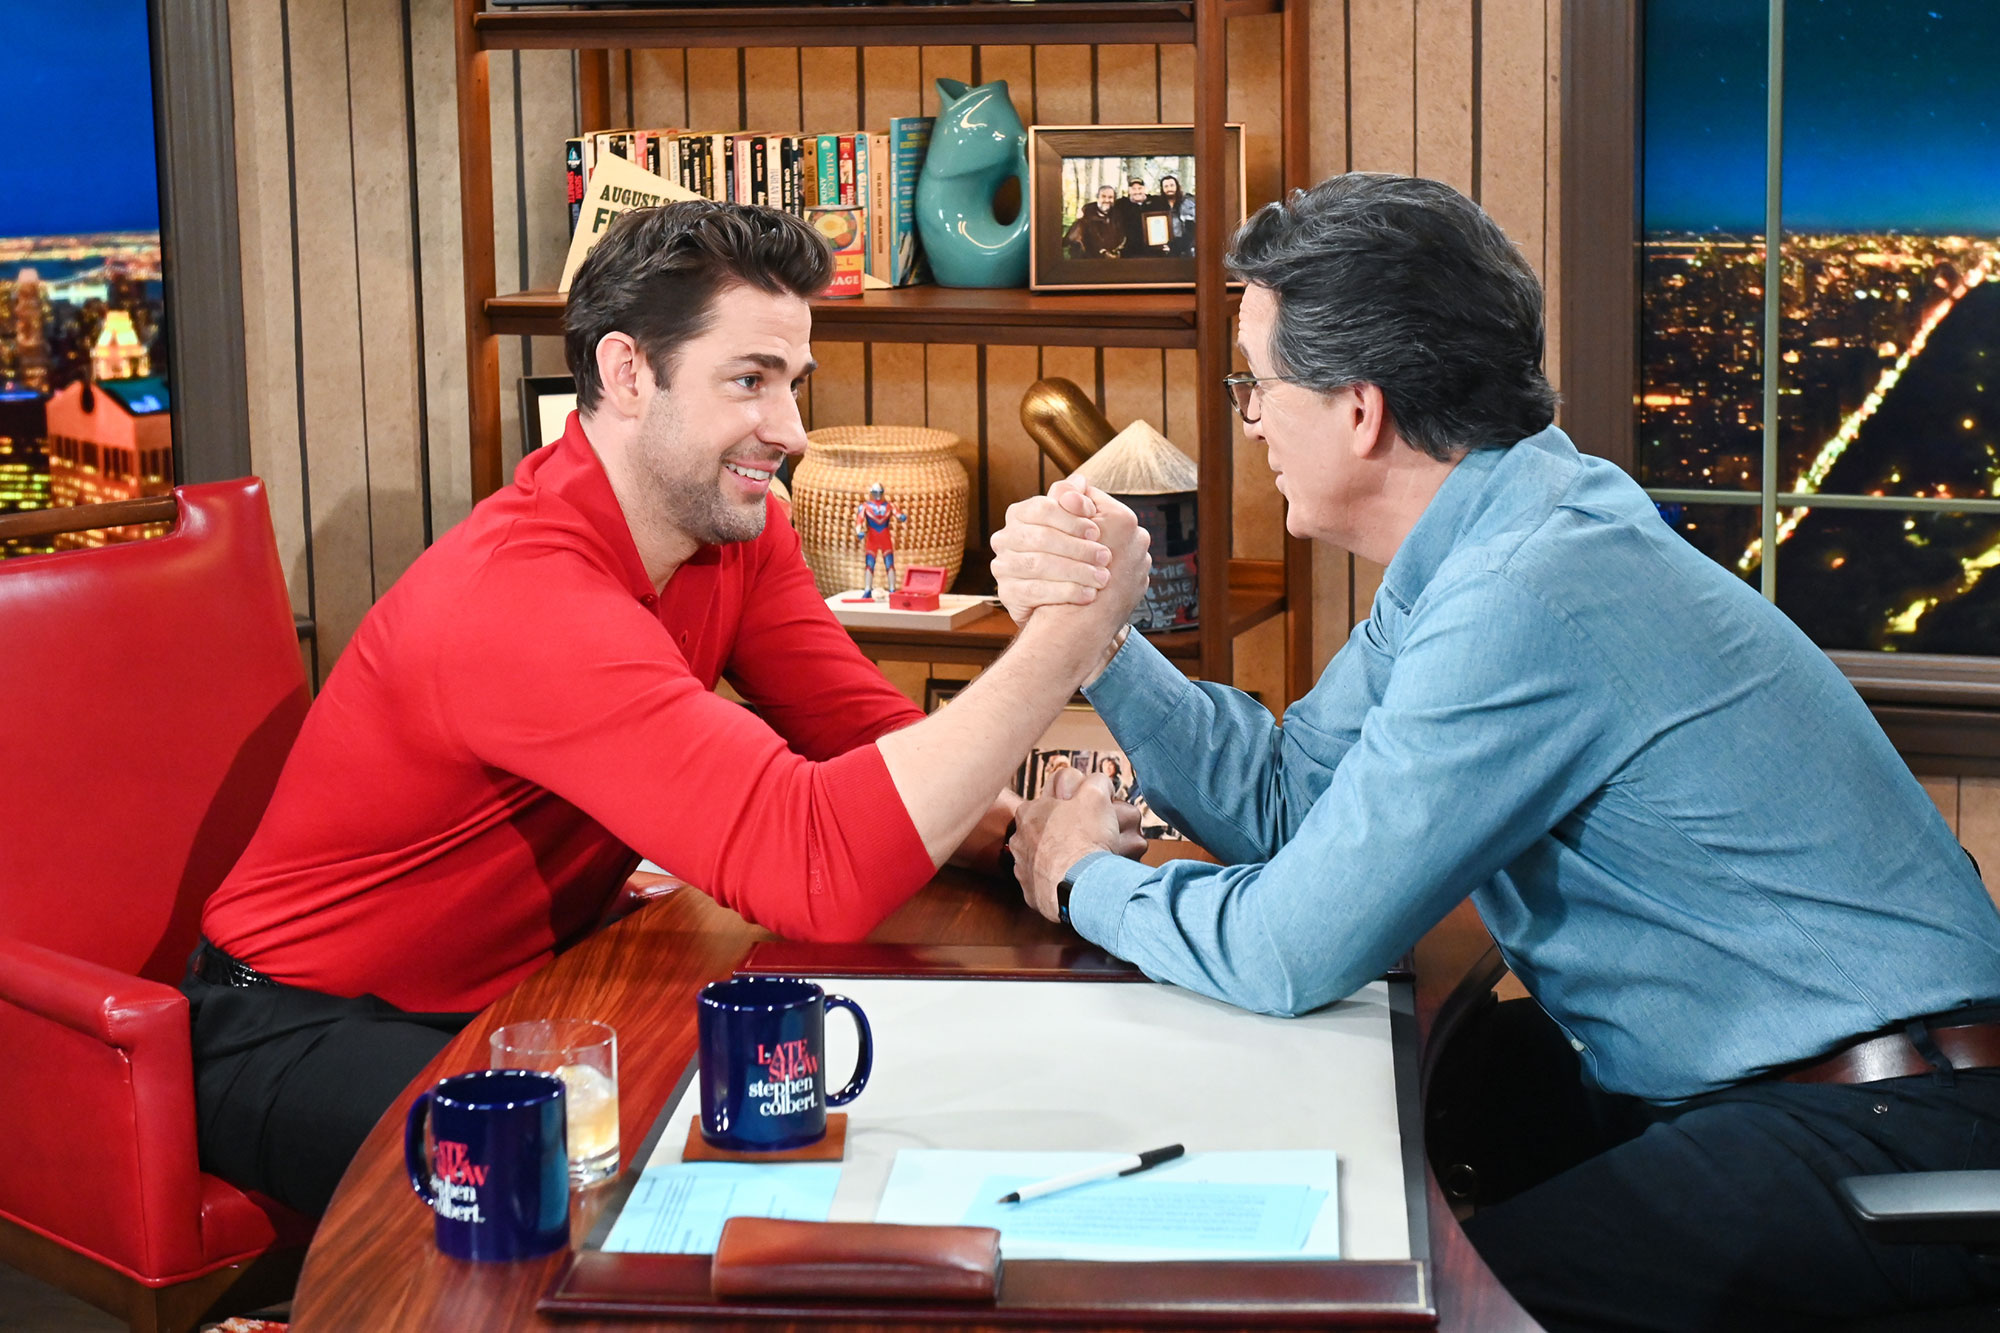 A Late Show with Stephen Colbert and guest John Krasinski during Thursday's May 20, 2021 live show